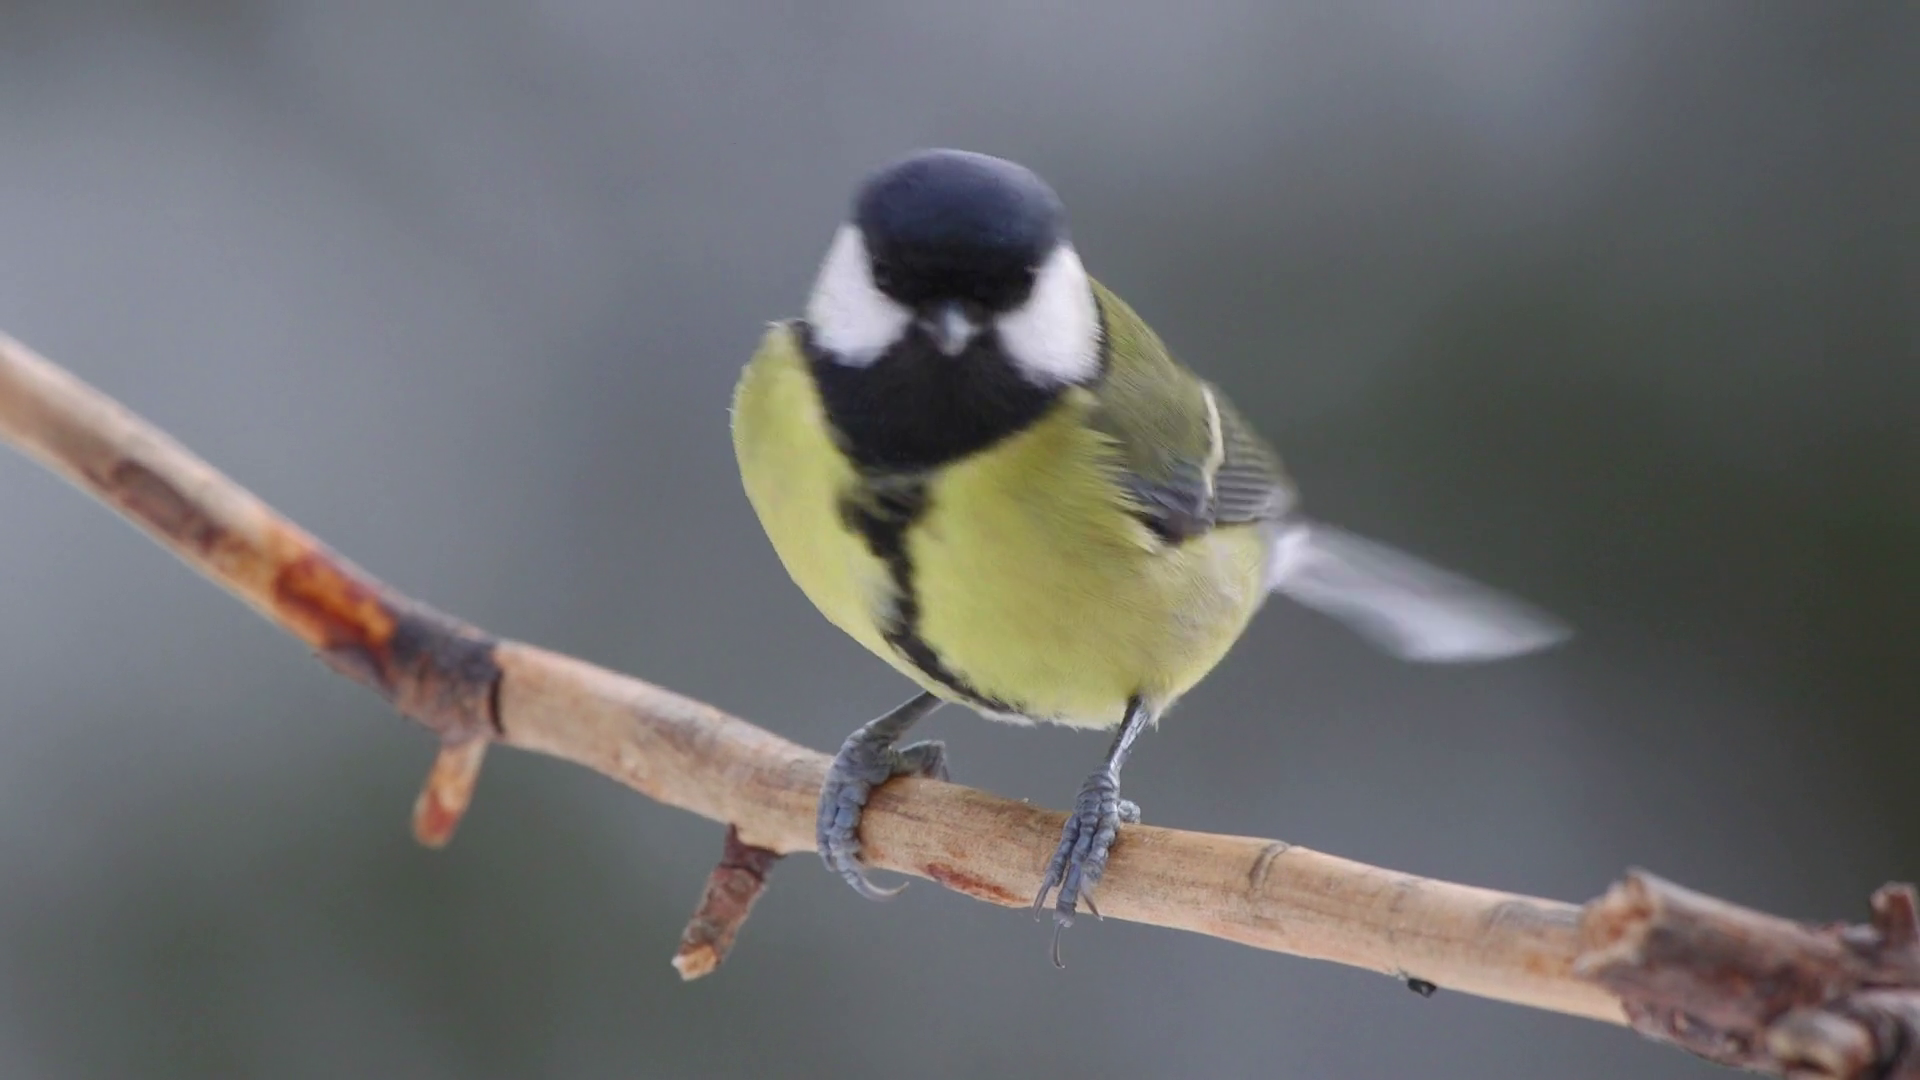 animal great tit bird perched on branch side view alerted fly away ...